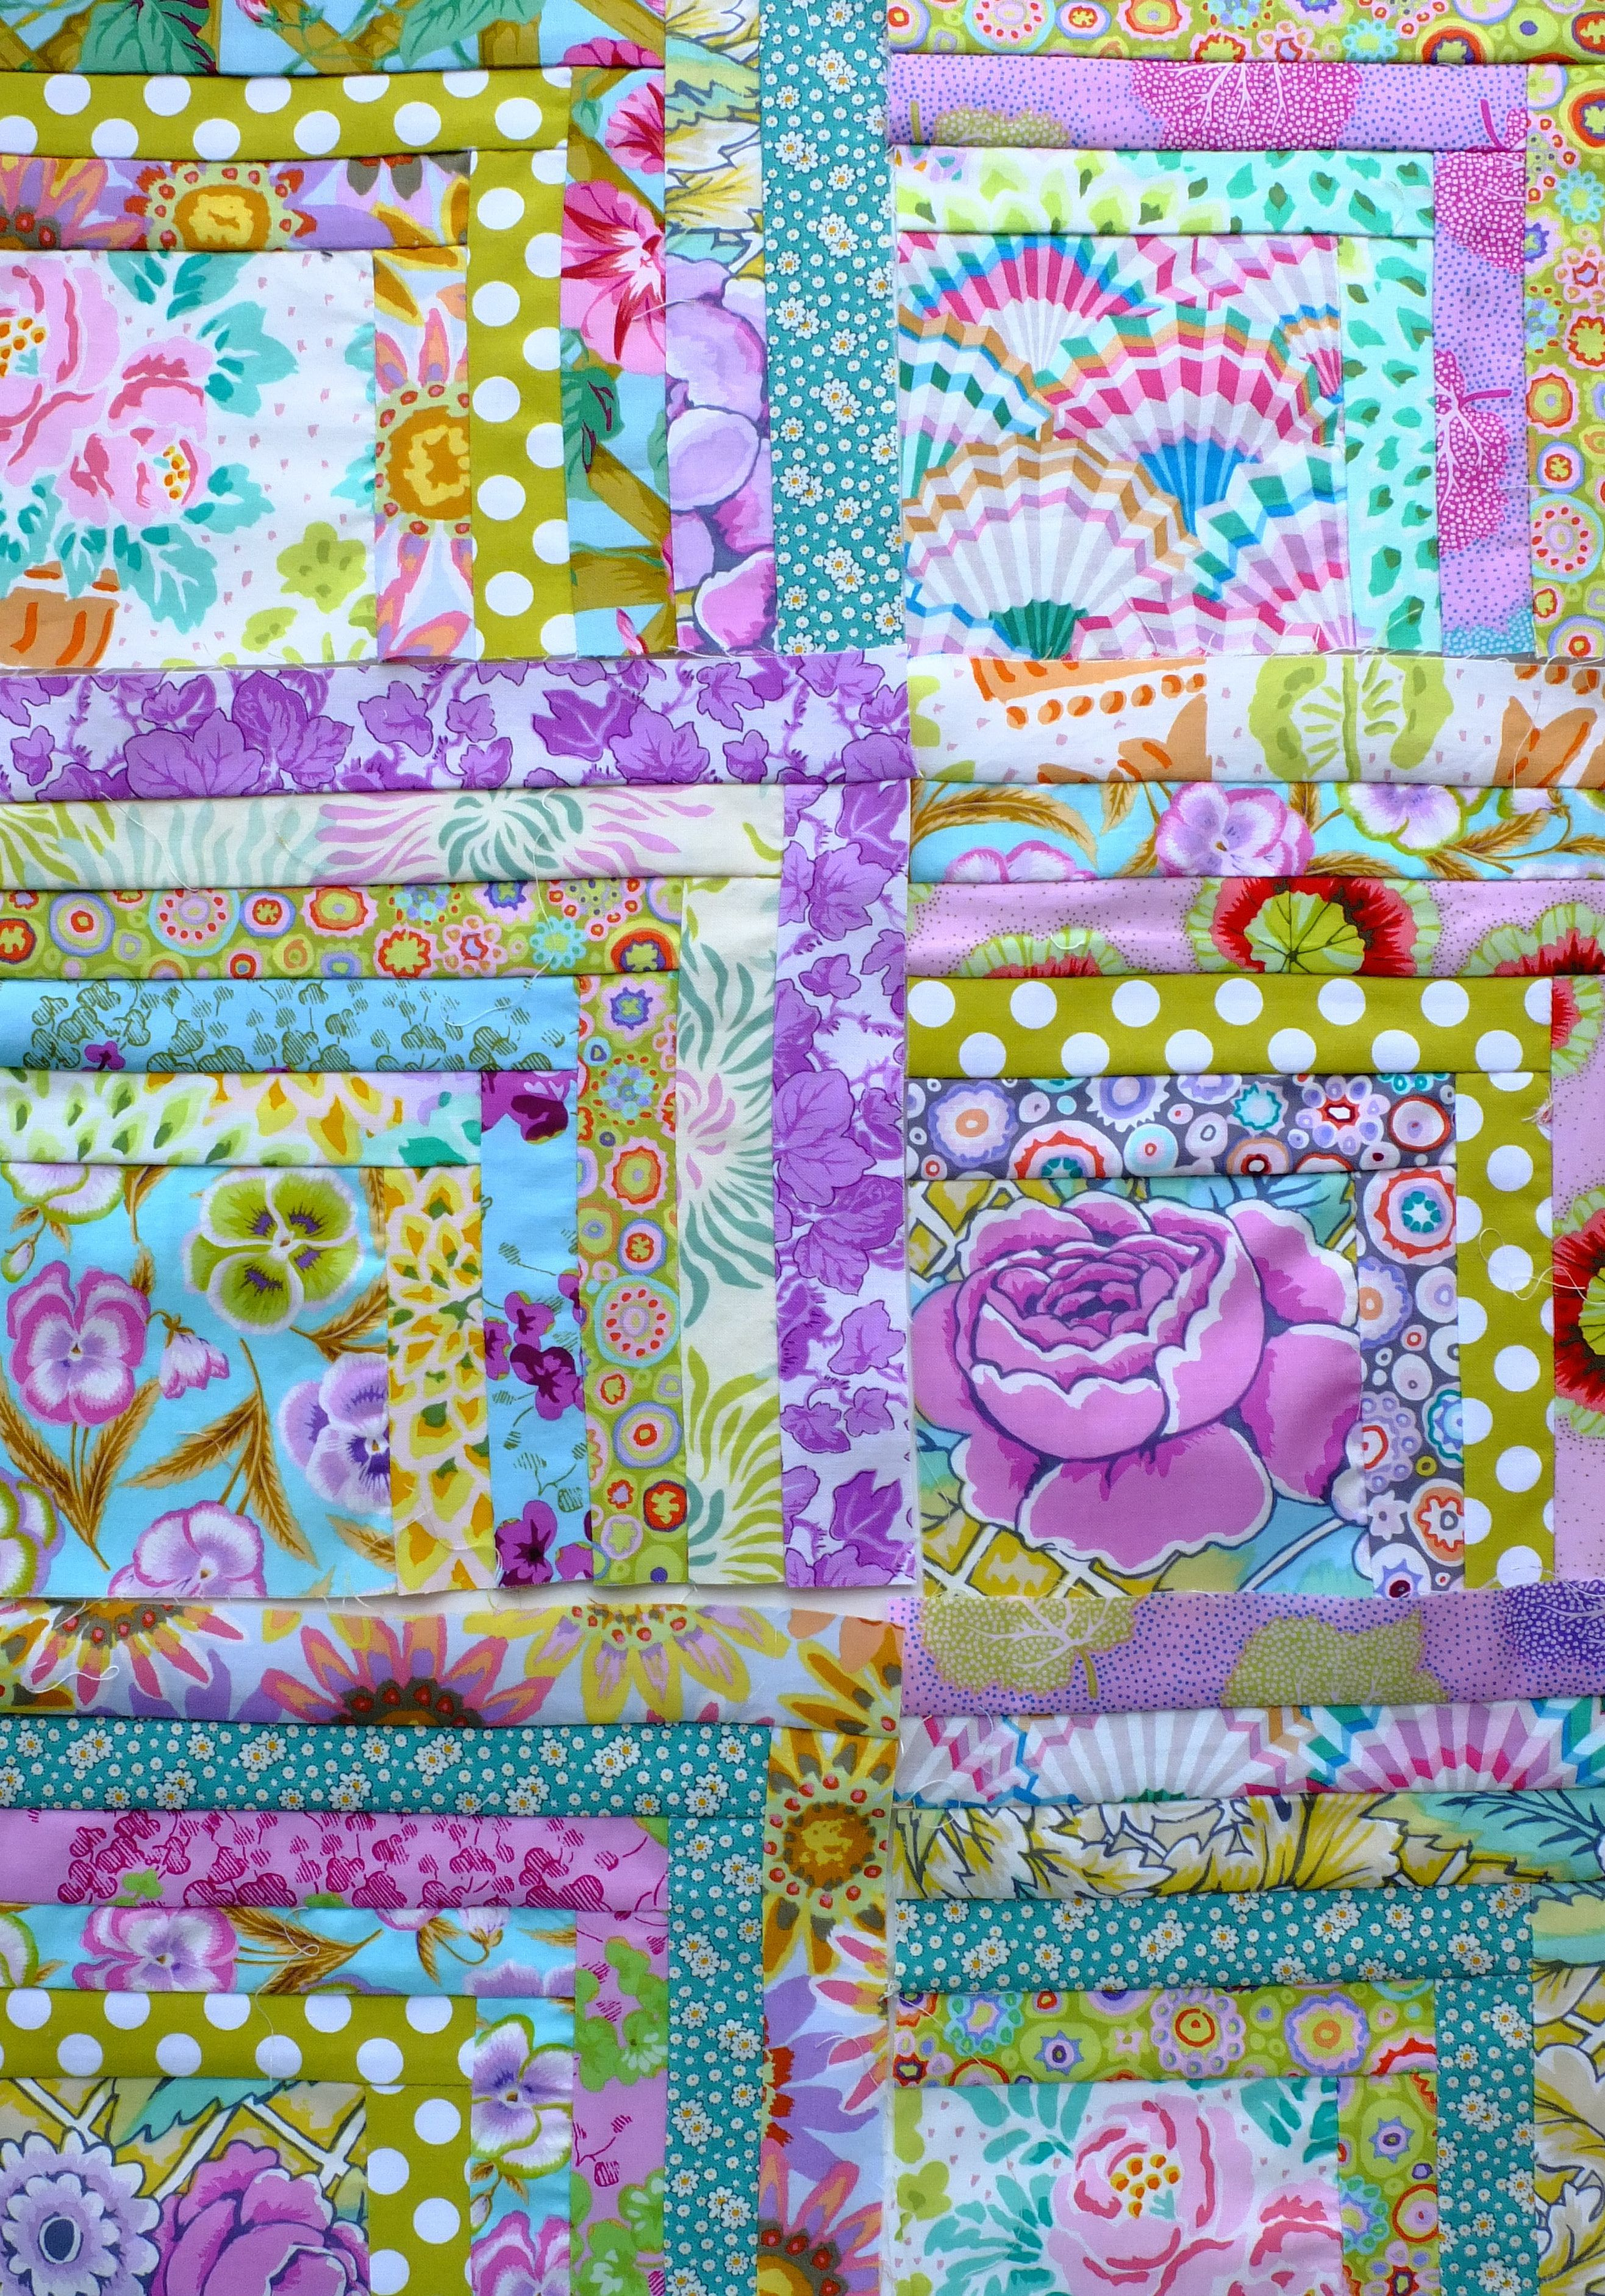 Purple Rain Half Log Cabin Quilt From The Gentle Art Of Quilt Making Jane Brocket Quilts Patchwork Quilts Flower Quilts